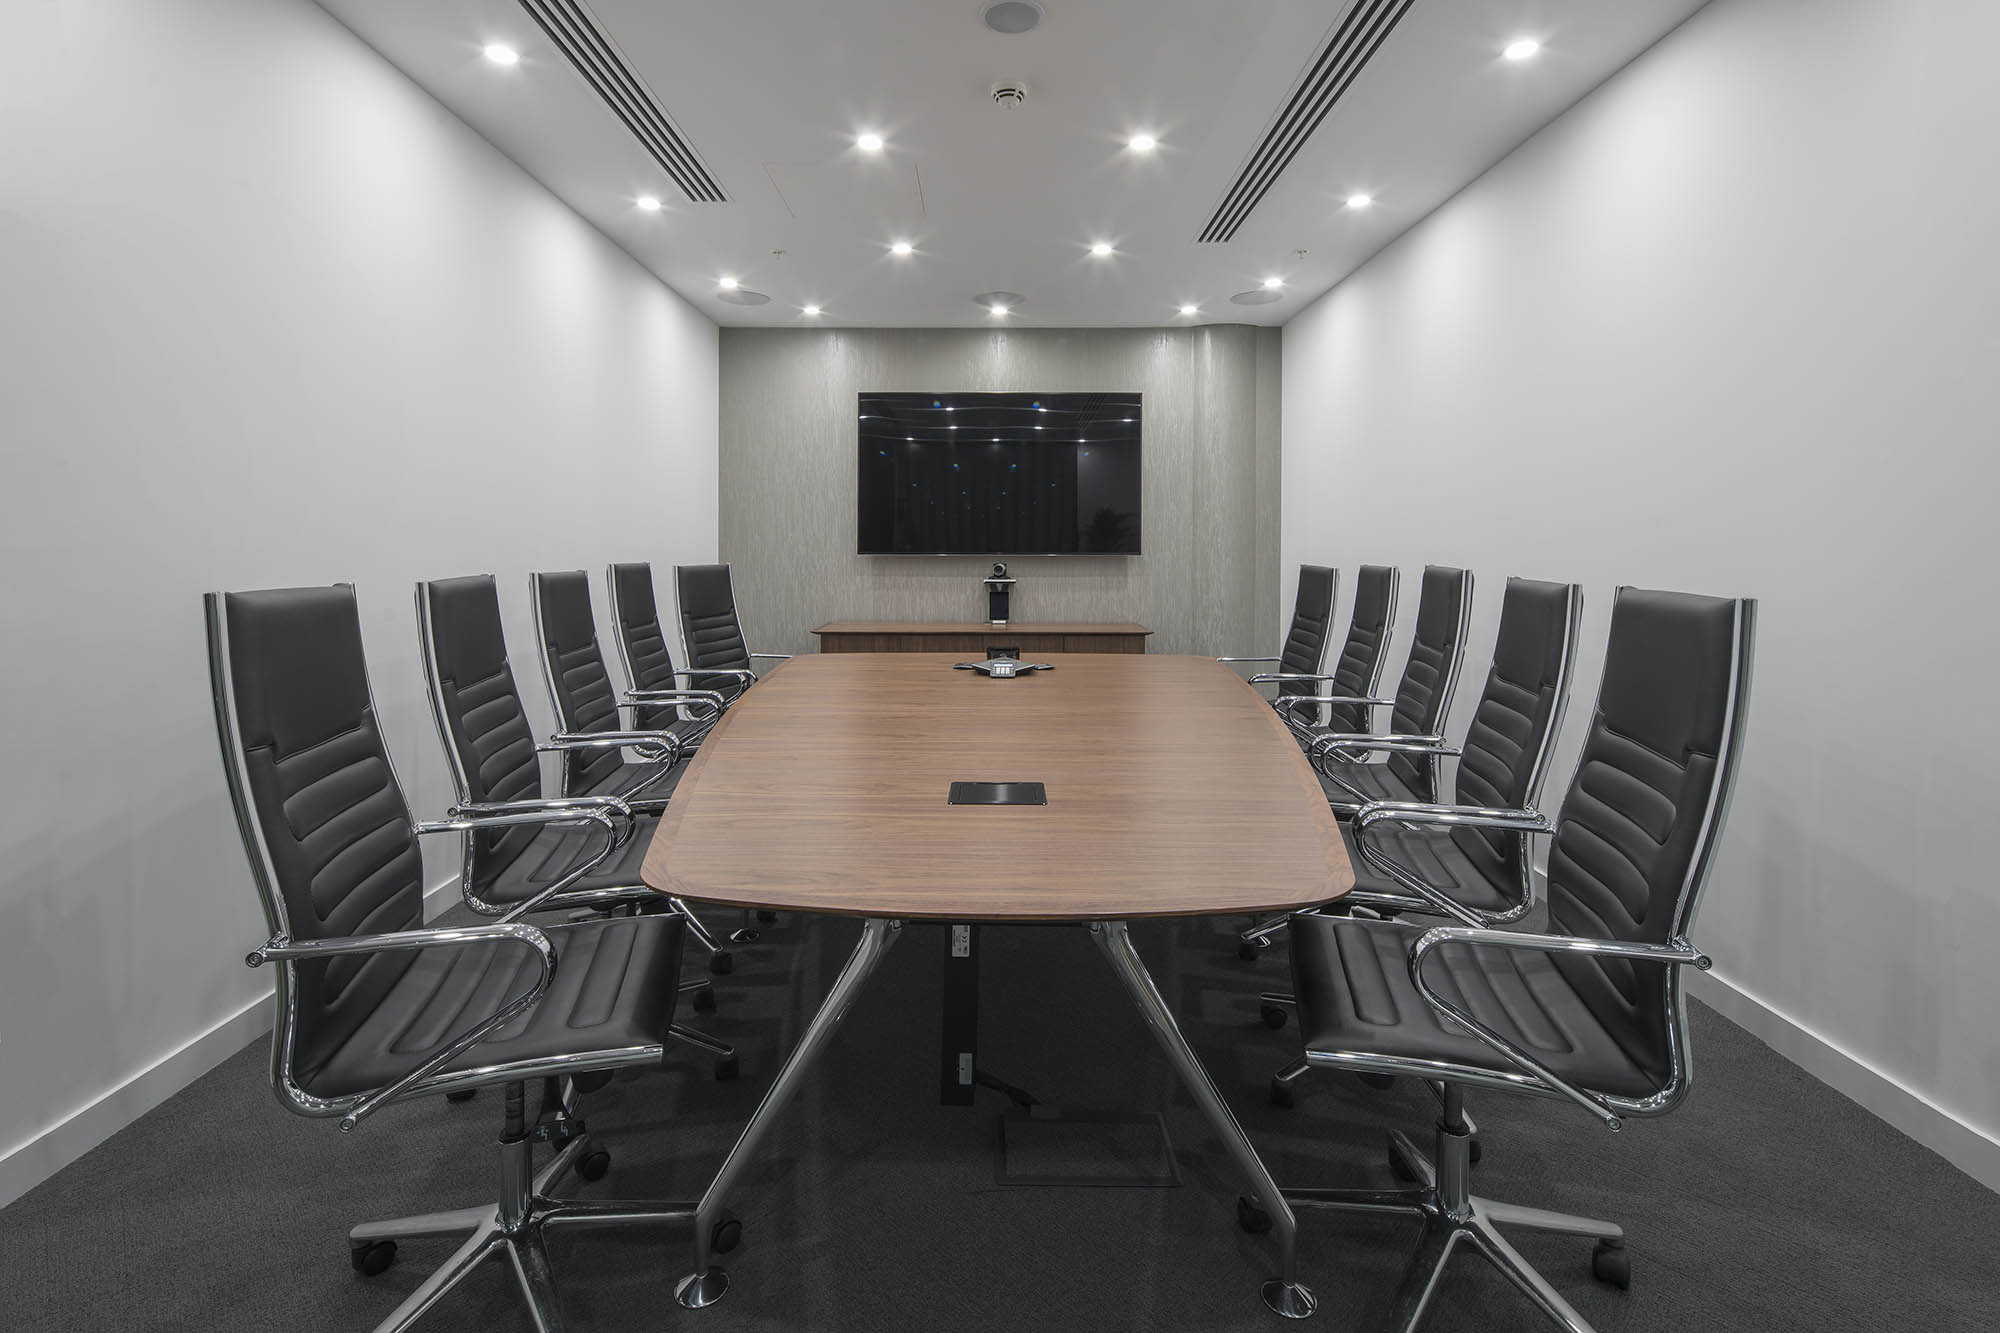 Marlin Equity executive meeting space